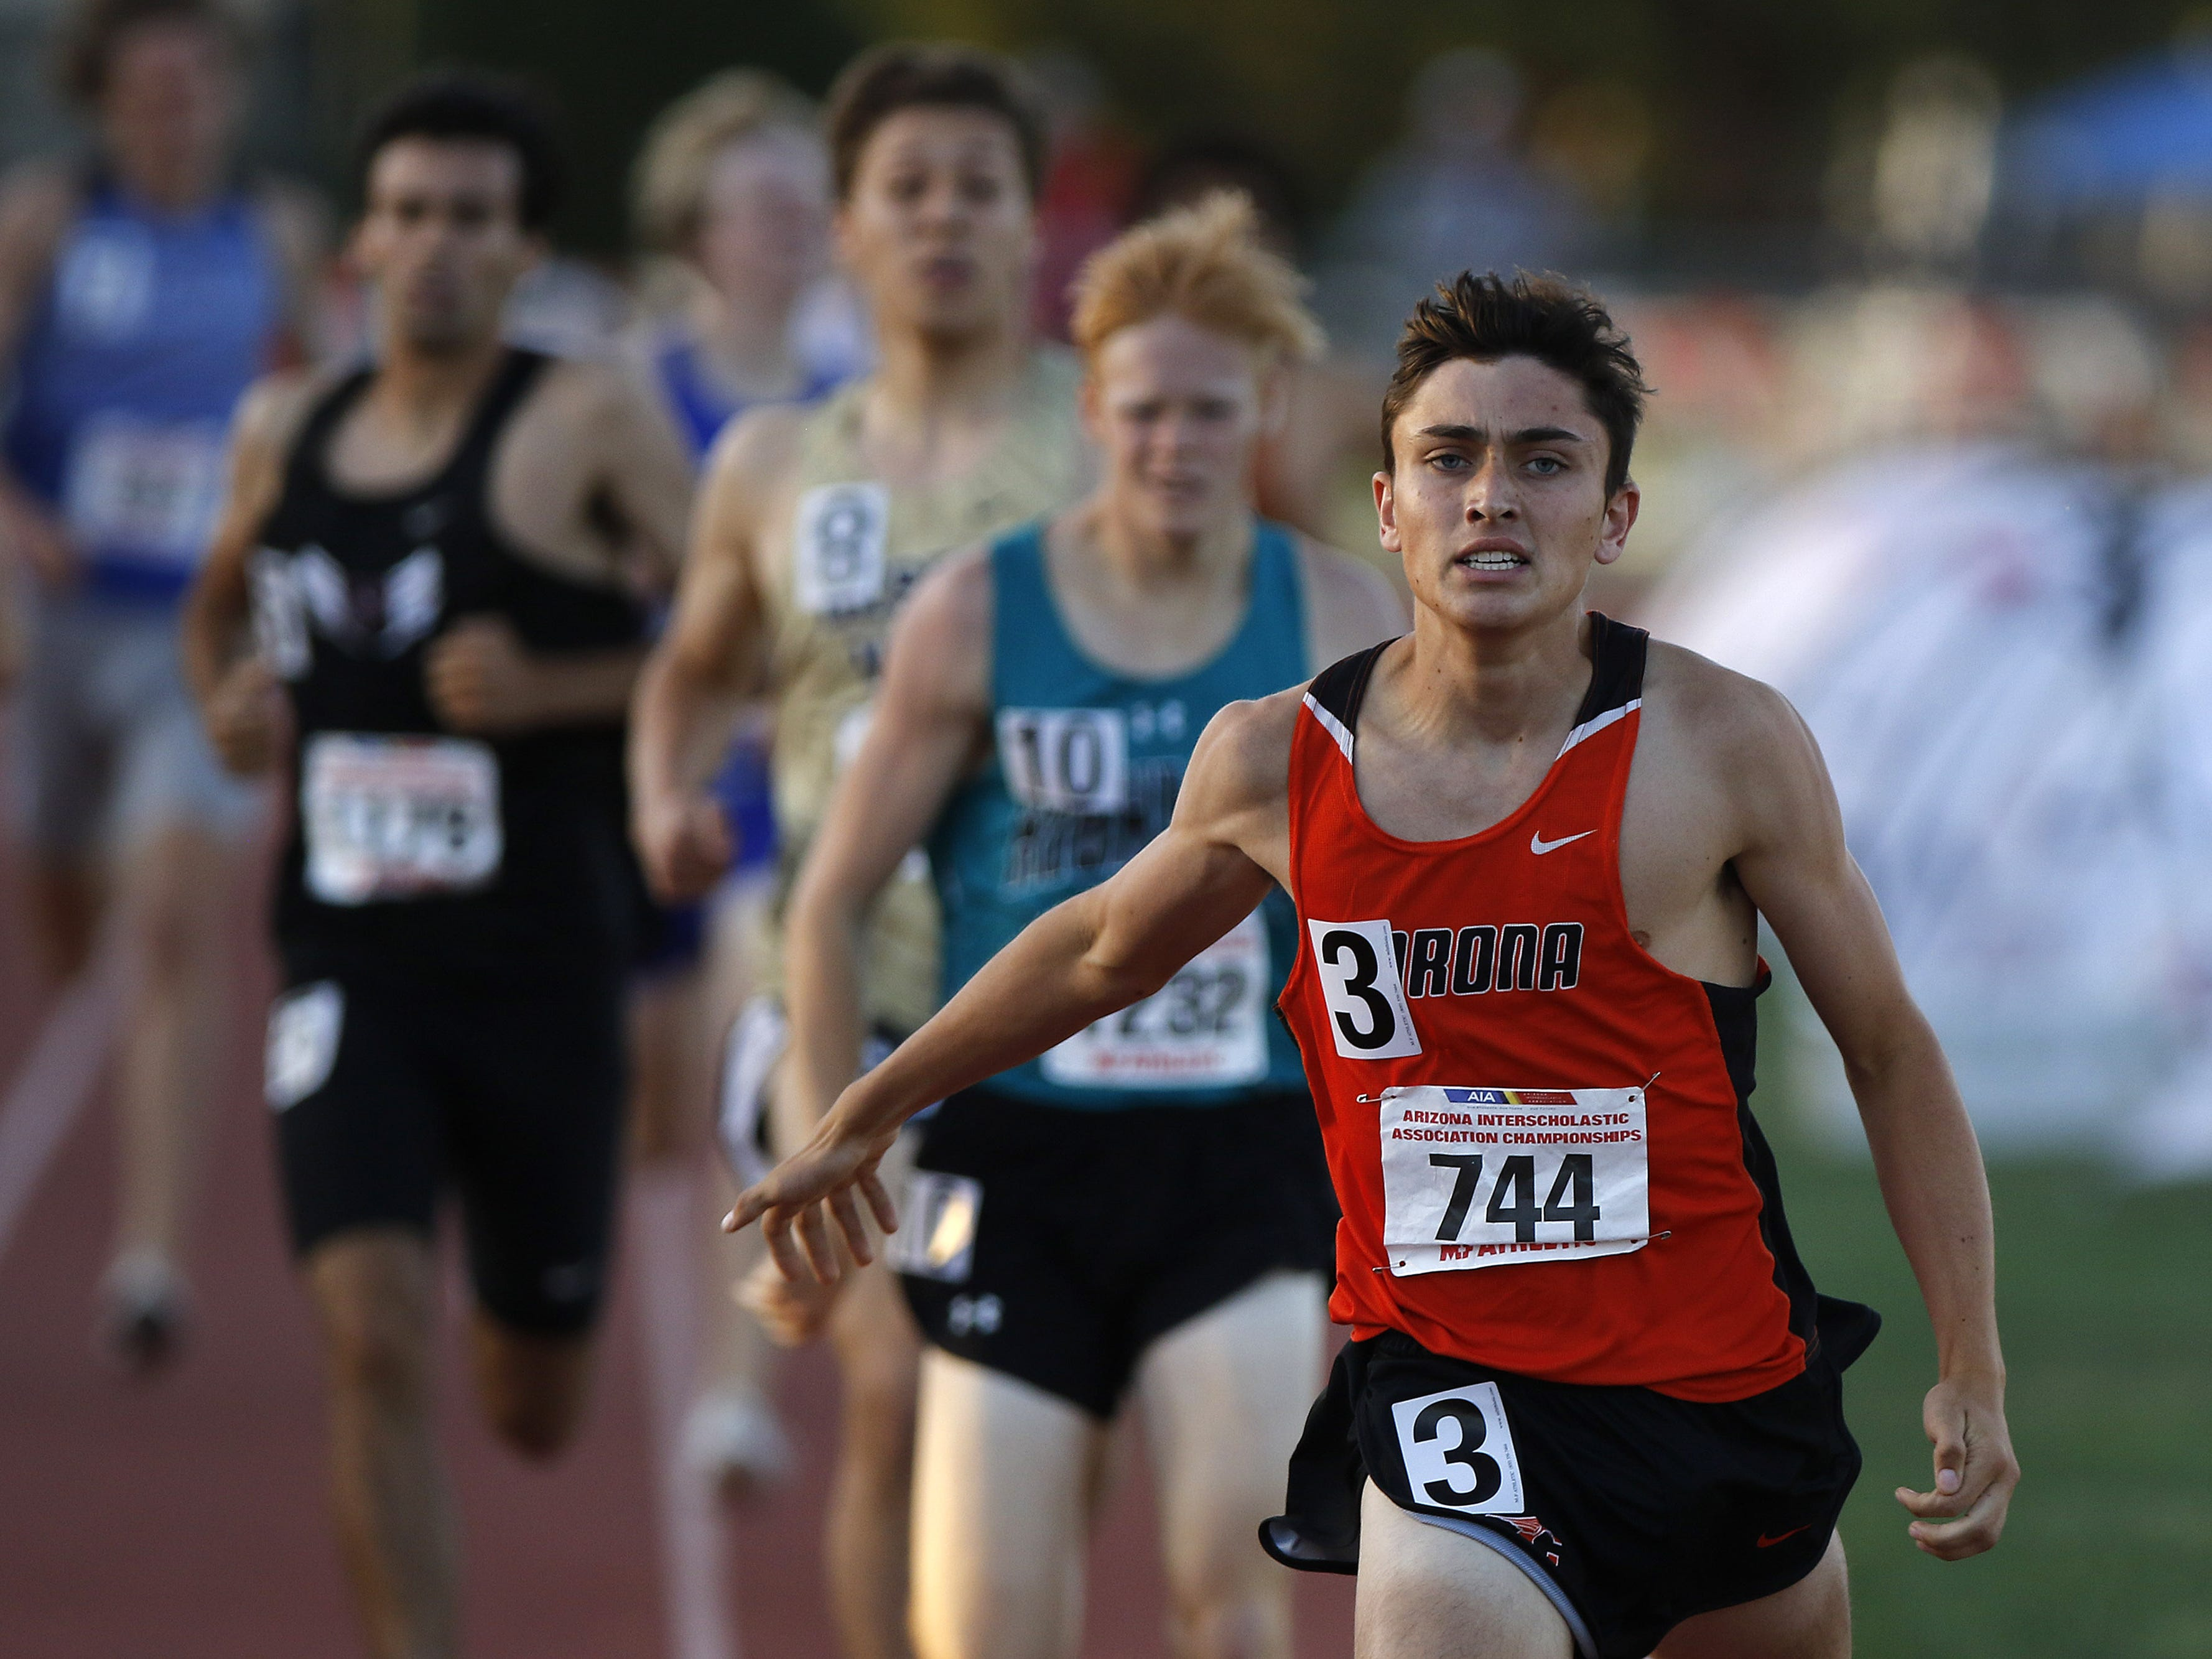 Corona del Sol's Bennett Gunning wins the Division I 800 meters championship during the 2019 Arizona State Track and Field Championship at Mesa Community College in Mesa, Arizona, May 04, 2019.